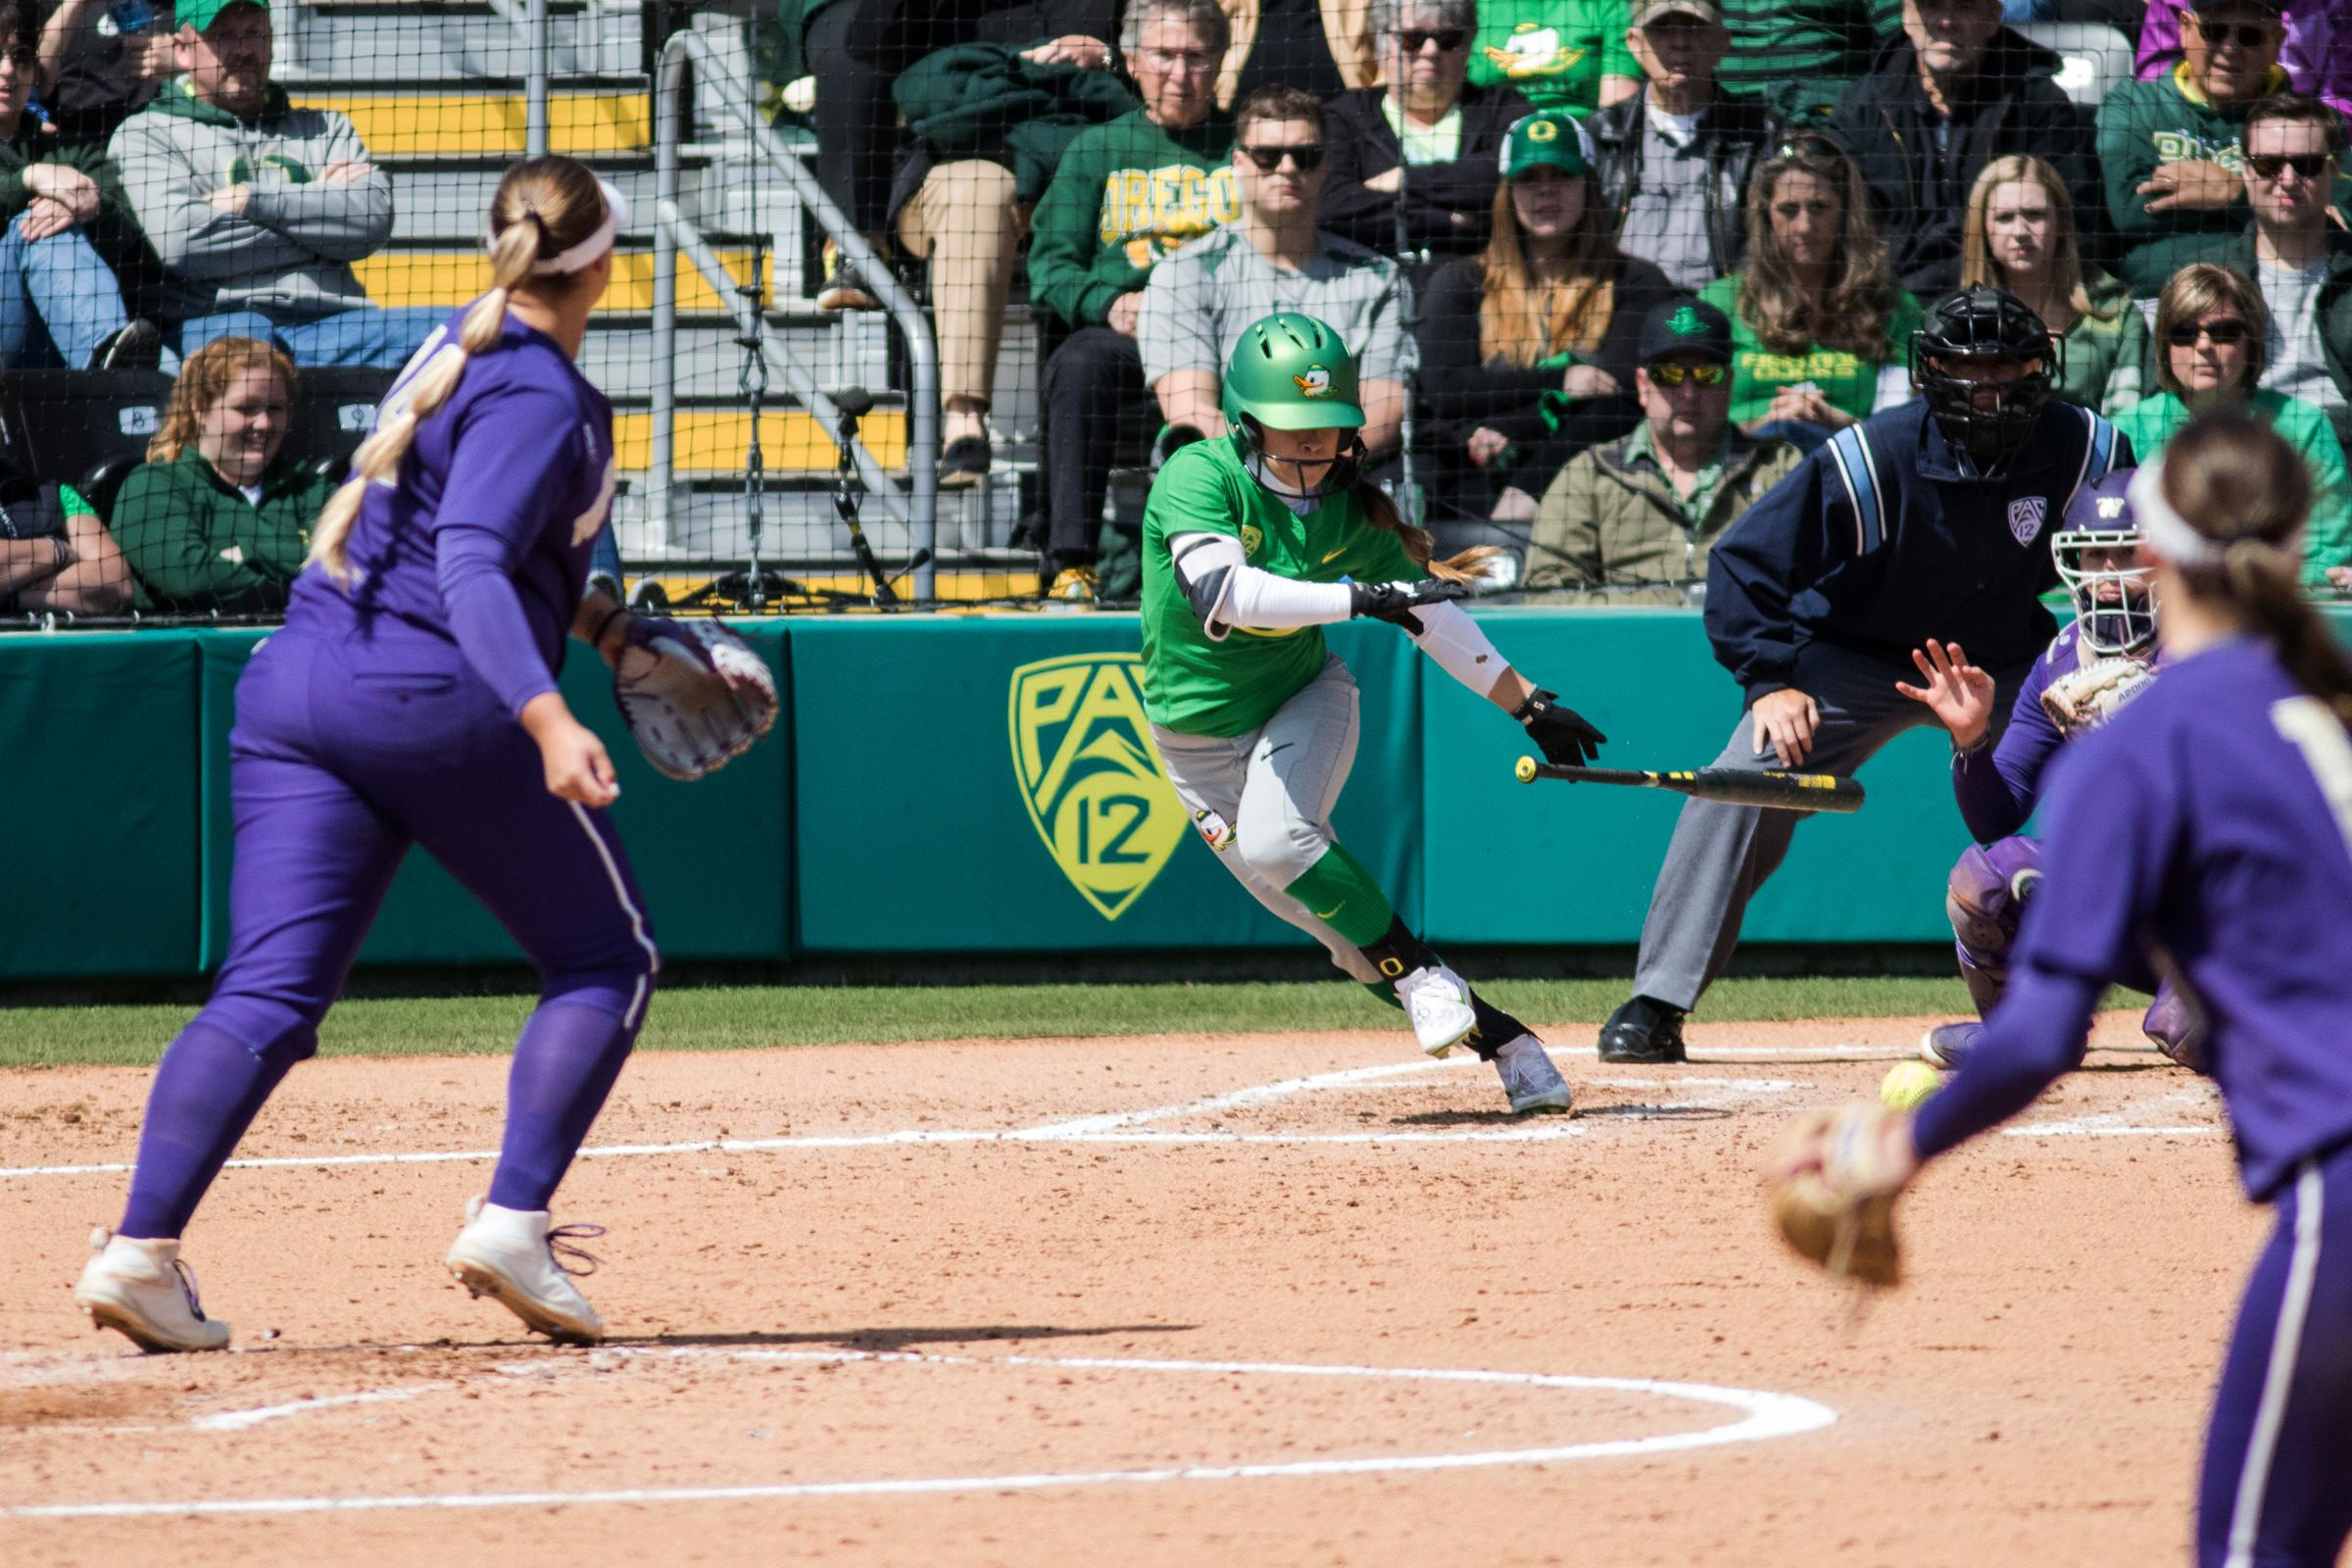 Oregon Ducks infielder Danica Mercado (#2) heads for first base after making contact with the pitch. In the final game of a three-game series, the University of Washington Huskies defeated the Oregon Ducks 5-3.  The Ducks led through the bottom of the 7th inning, but Washington's Morganne Flores (#47) tied it up with a two-run double.  Flores drove in two more runs in the 9th to take the lead.  Photo by Austin Hicks, Oregon News Lab